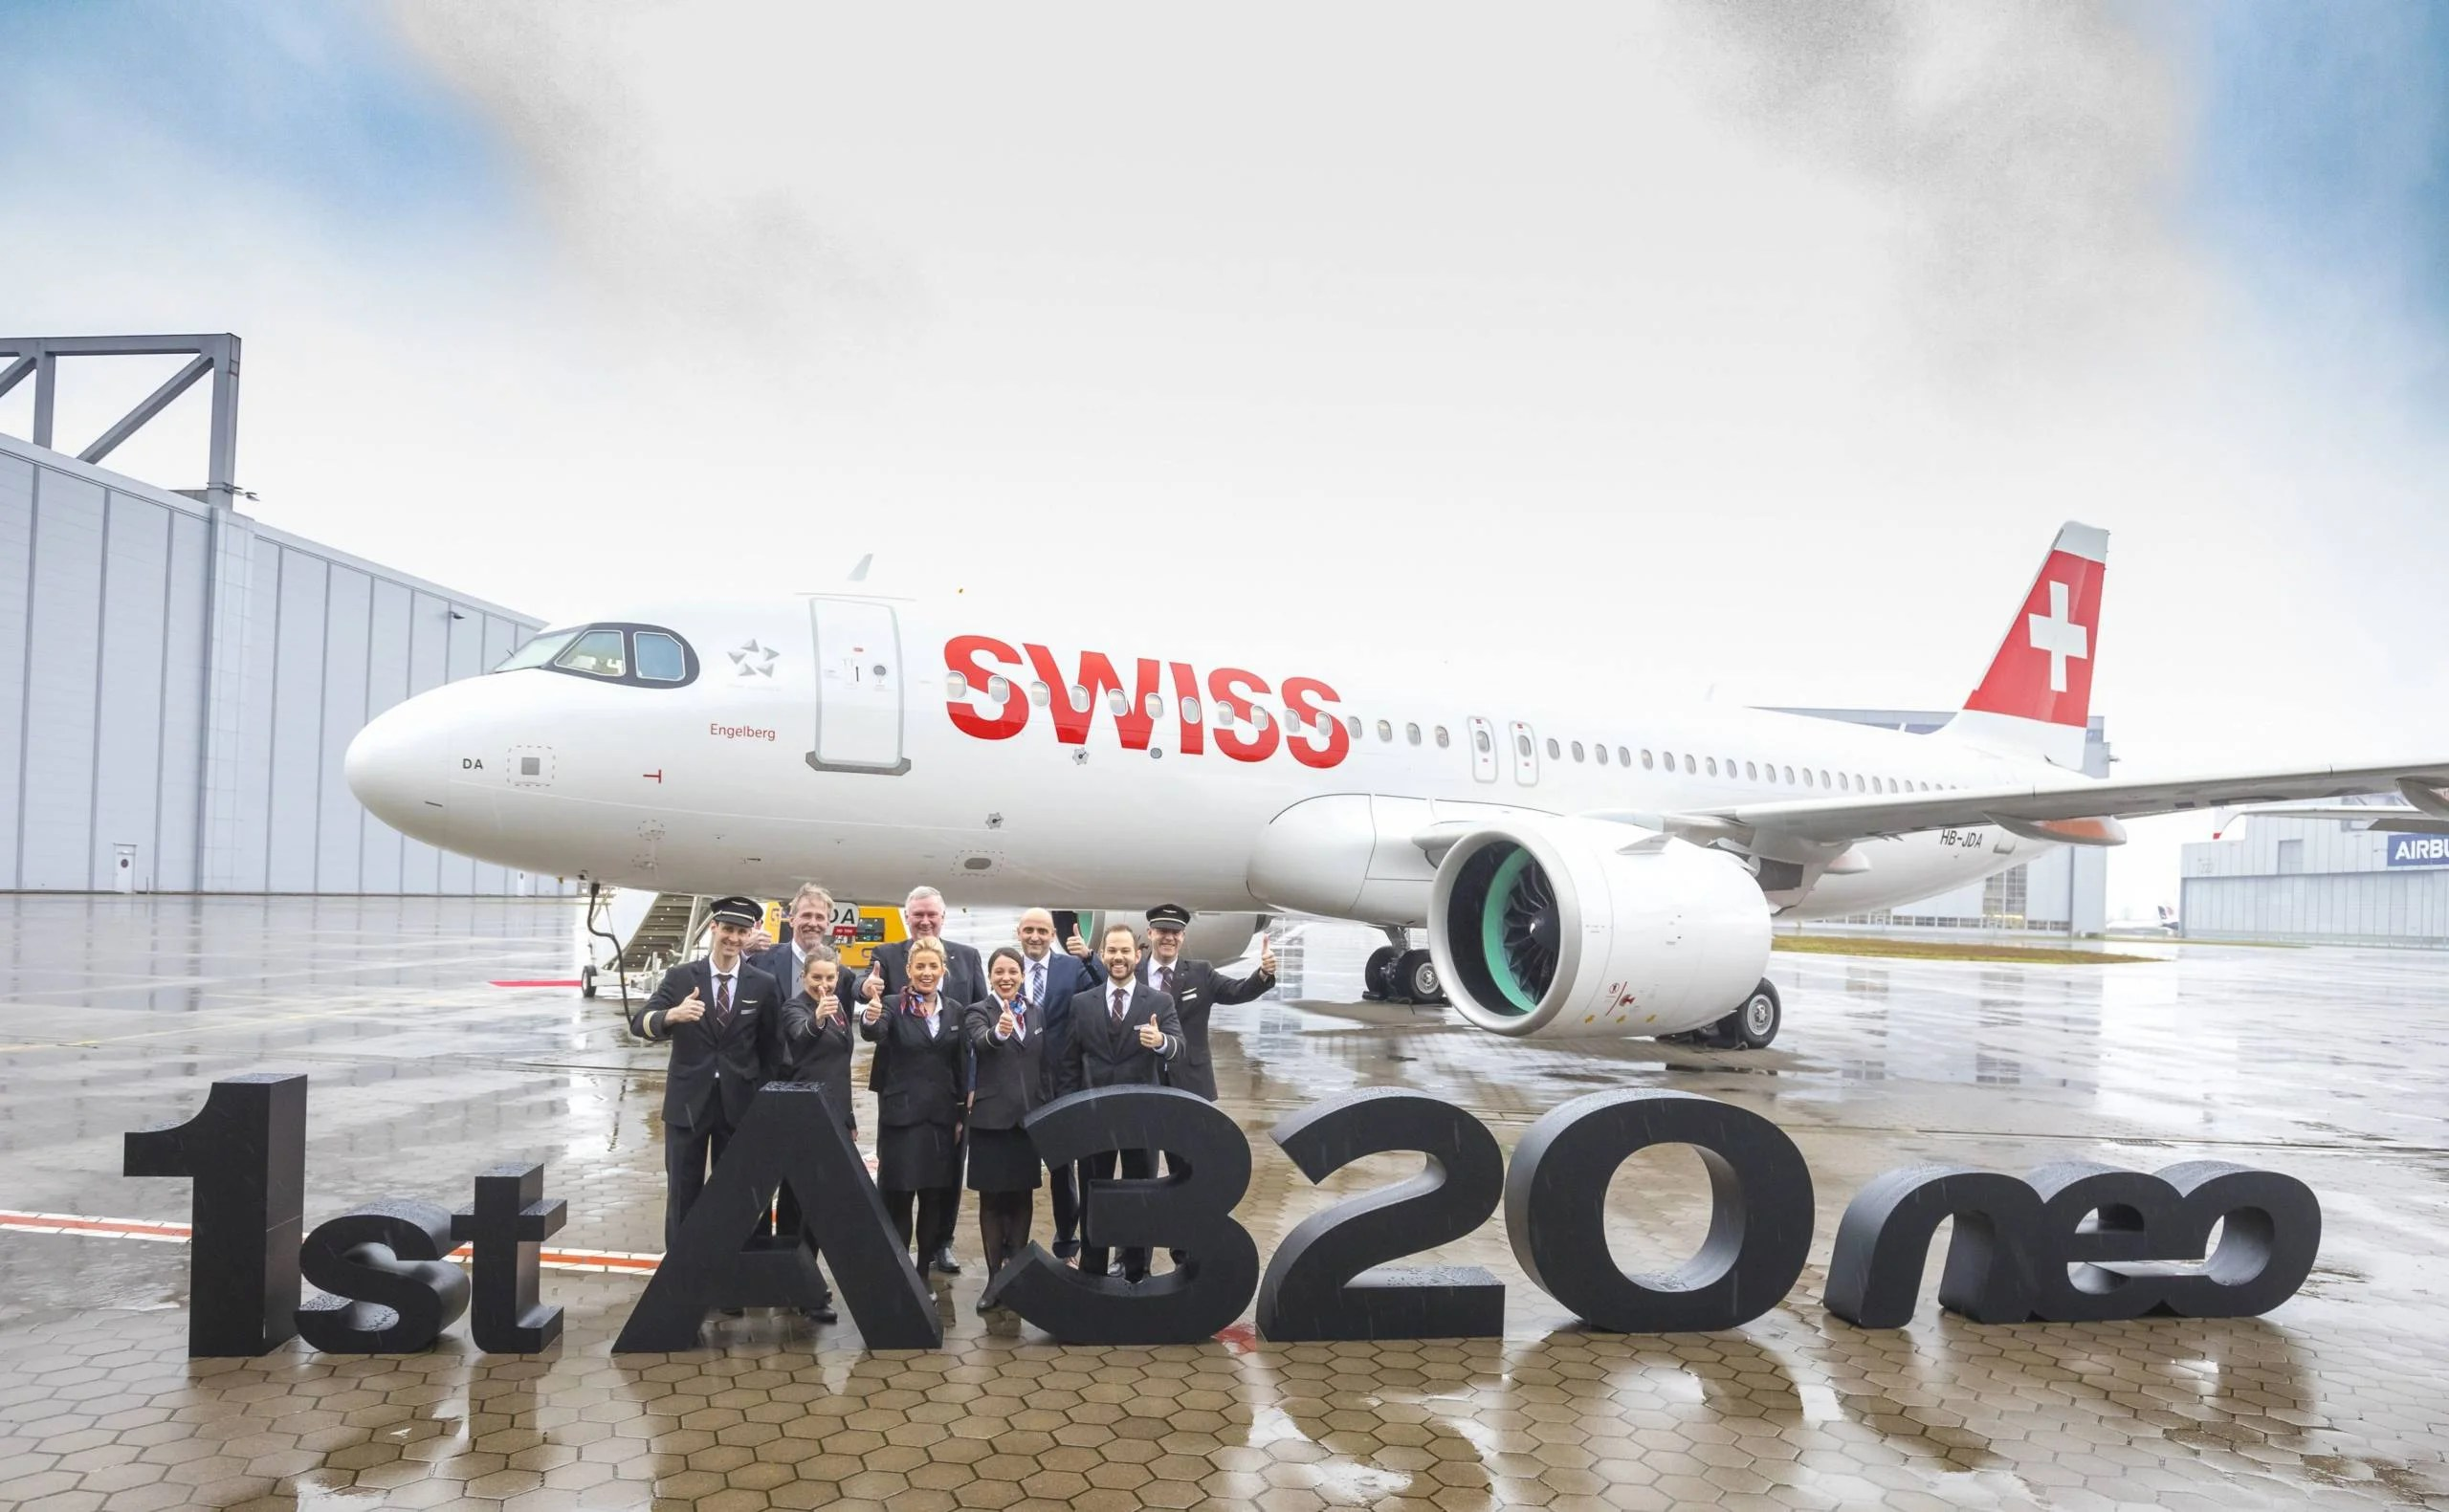 Swiss takes delivery of its first A320neo, which will soon fly to Heathrow